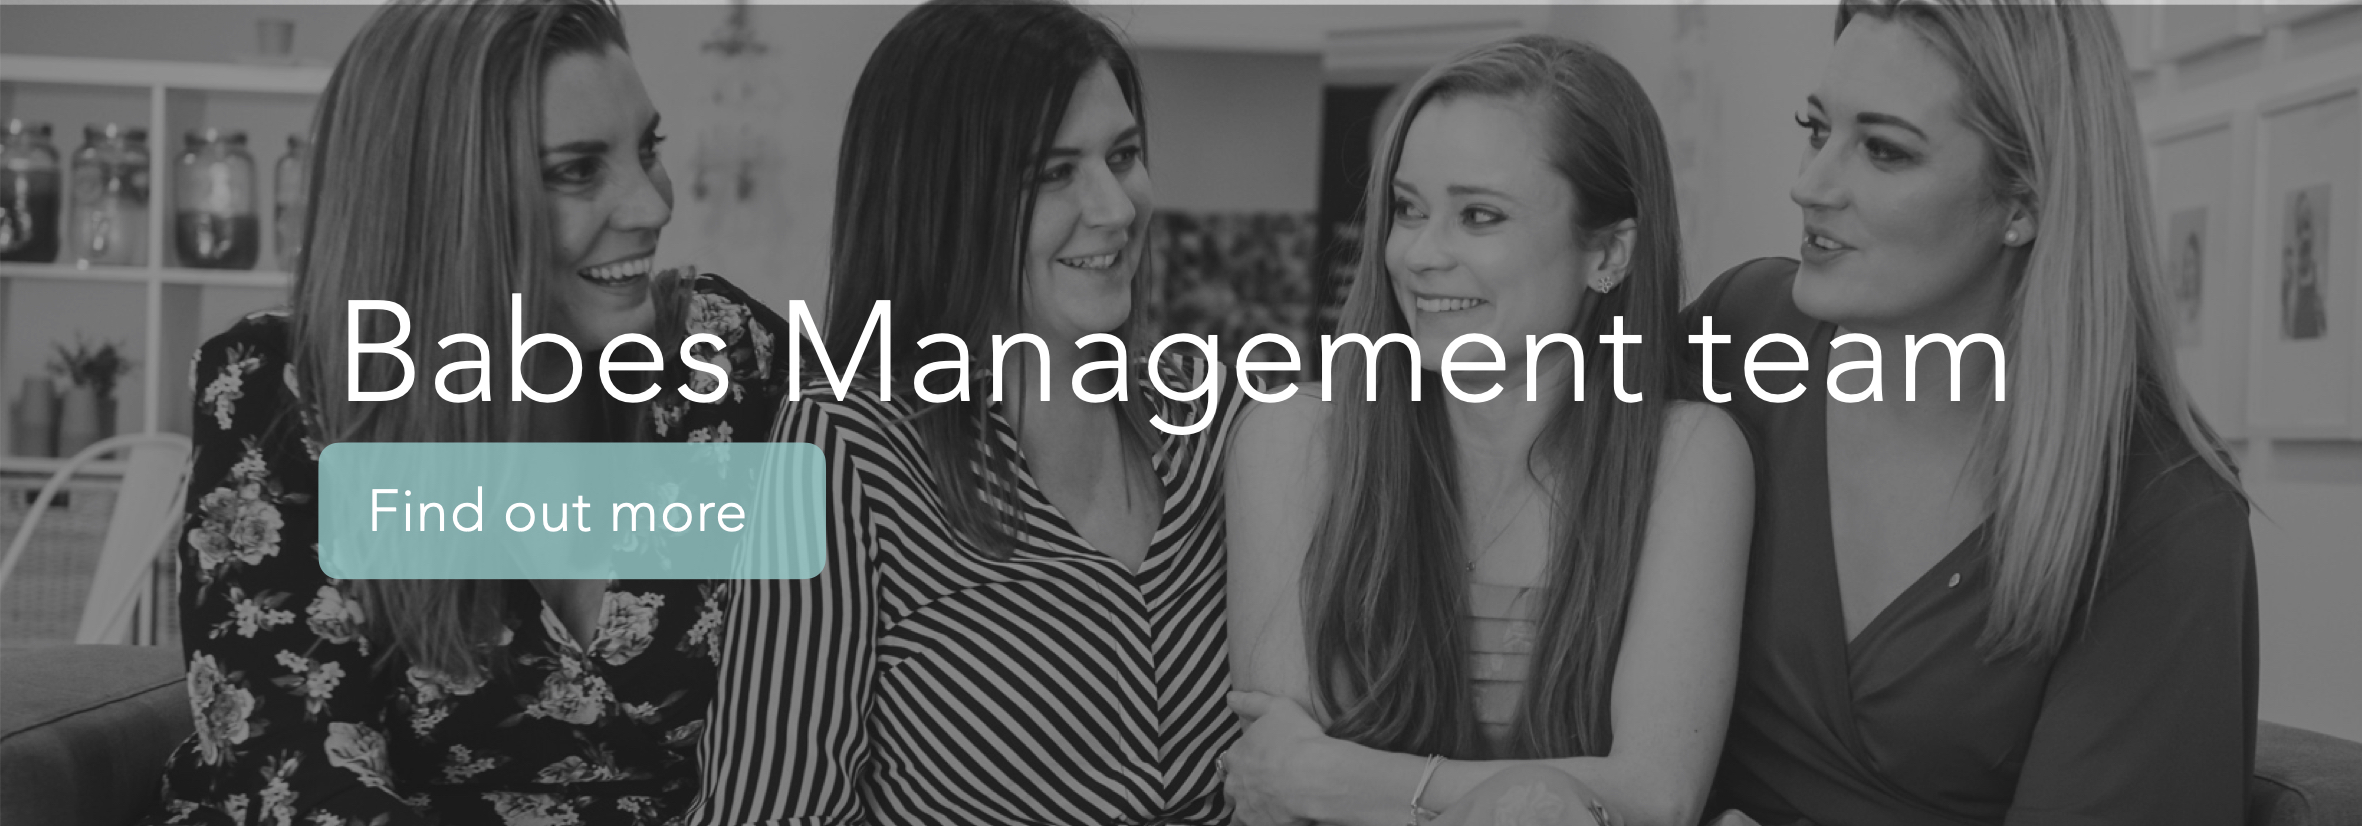 Website_photo_banner_2020_-_management_team.jpg